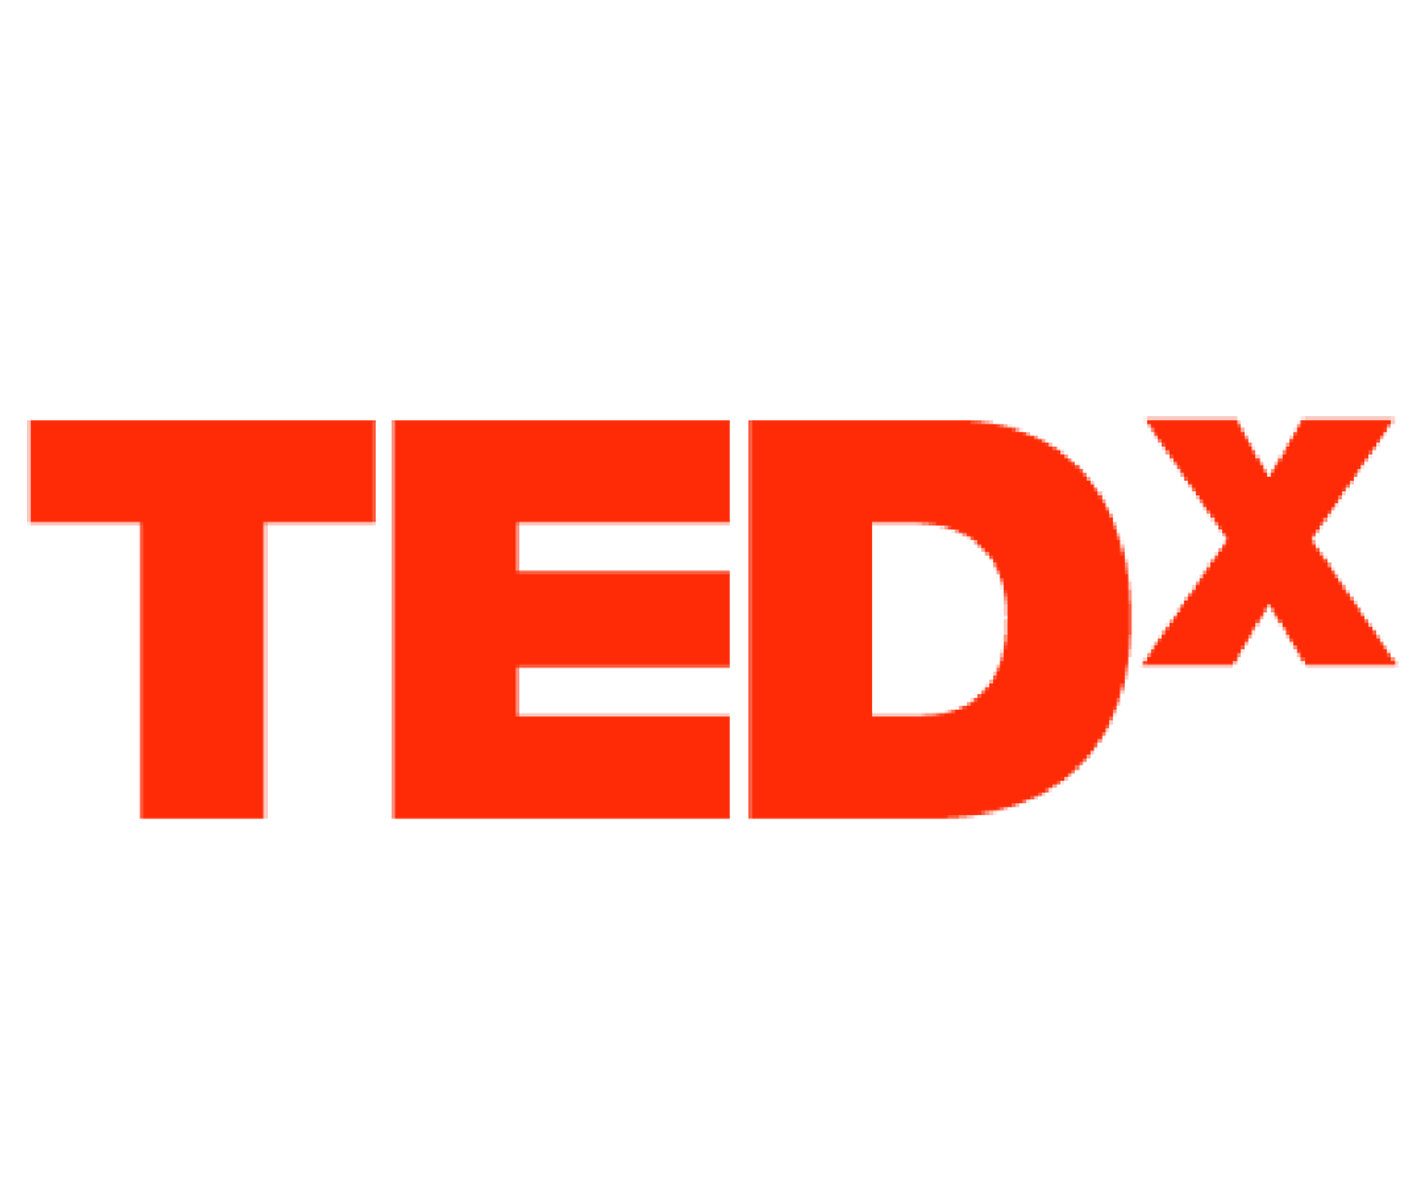 TEDxcopy.png